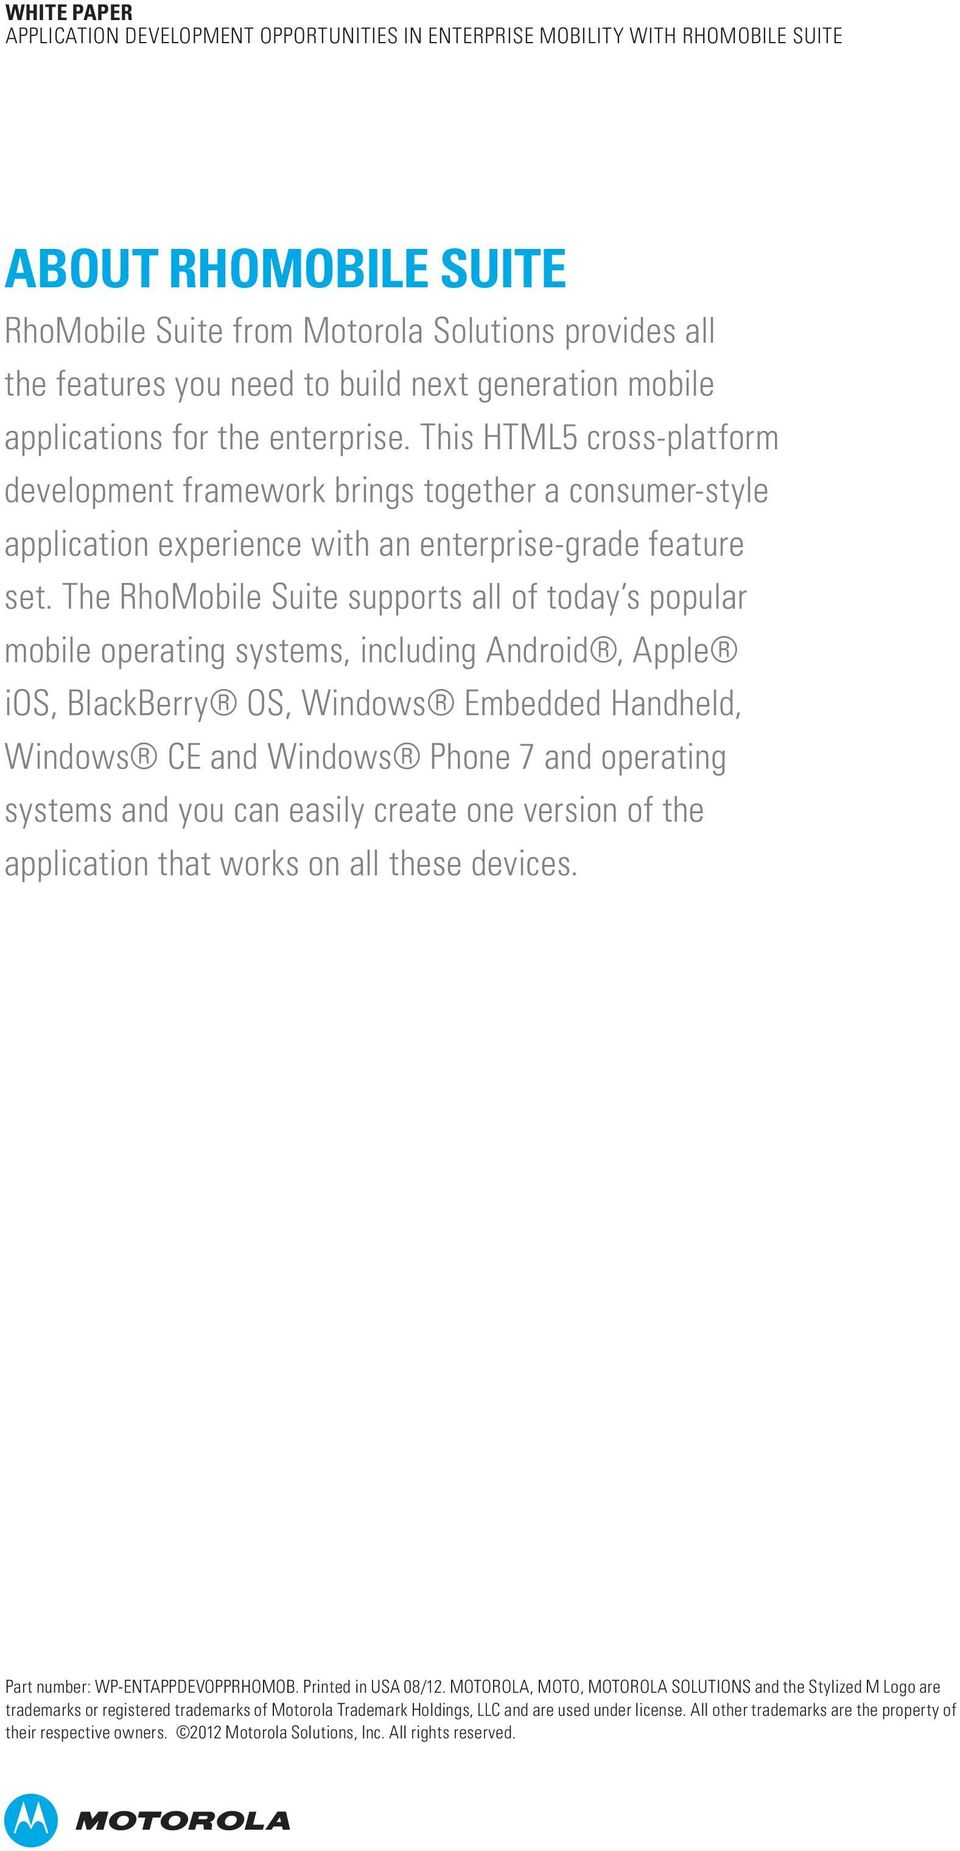 The RhoMobile Suite supports all of today s popular mobile operating systems, including Android, Apple ios, BlackBerry OS, Windows Embedded Handheld, Windows CE and Windows Phone 7 and operating